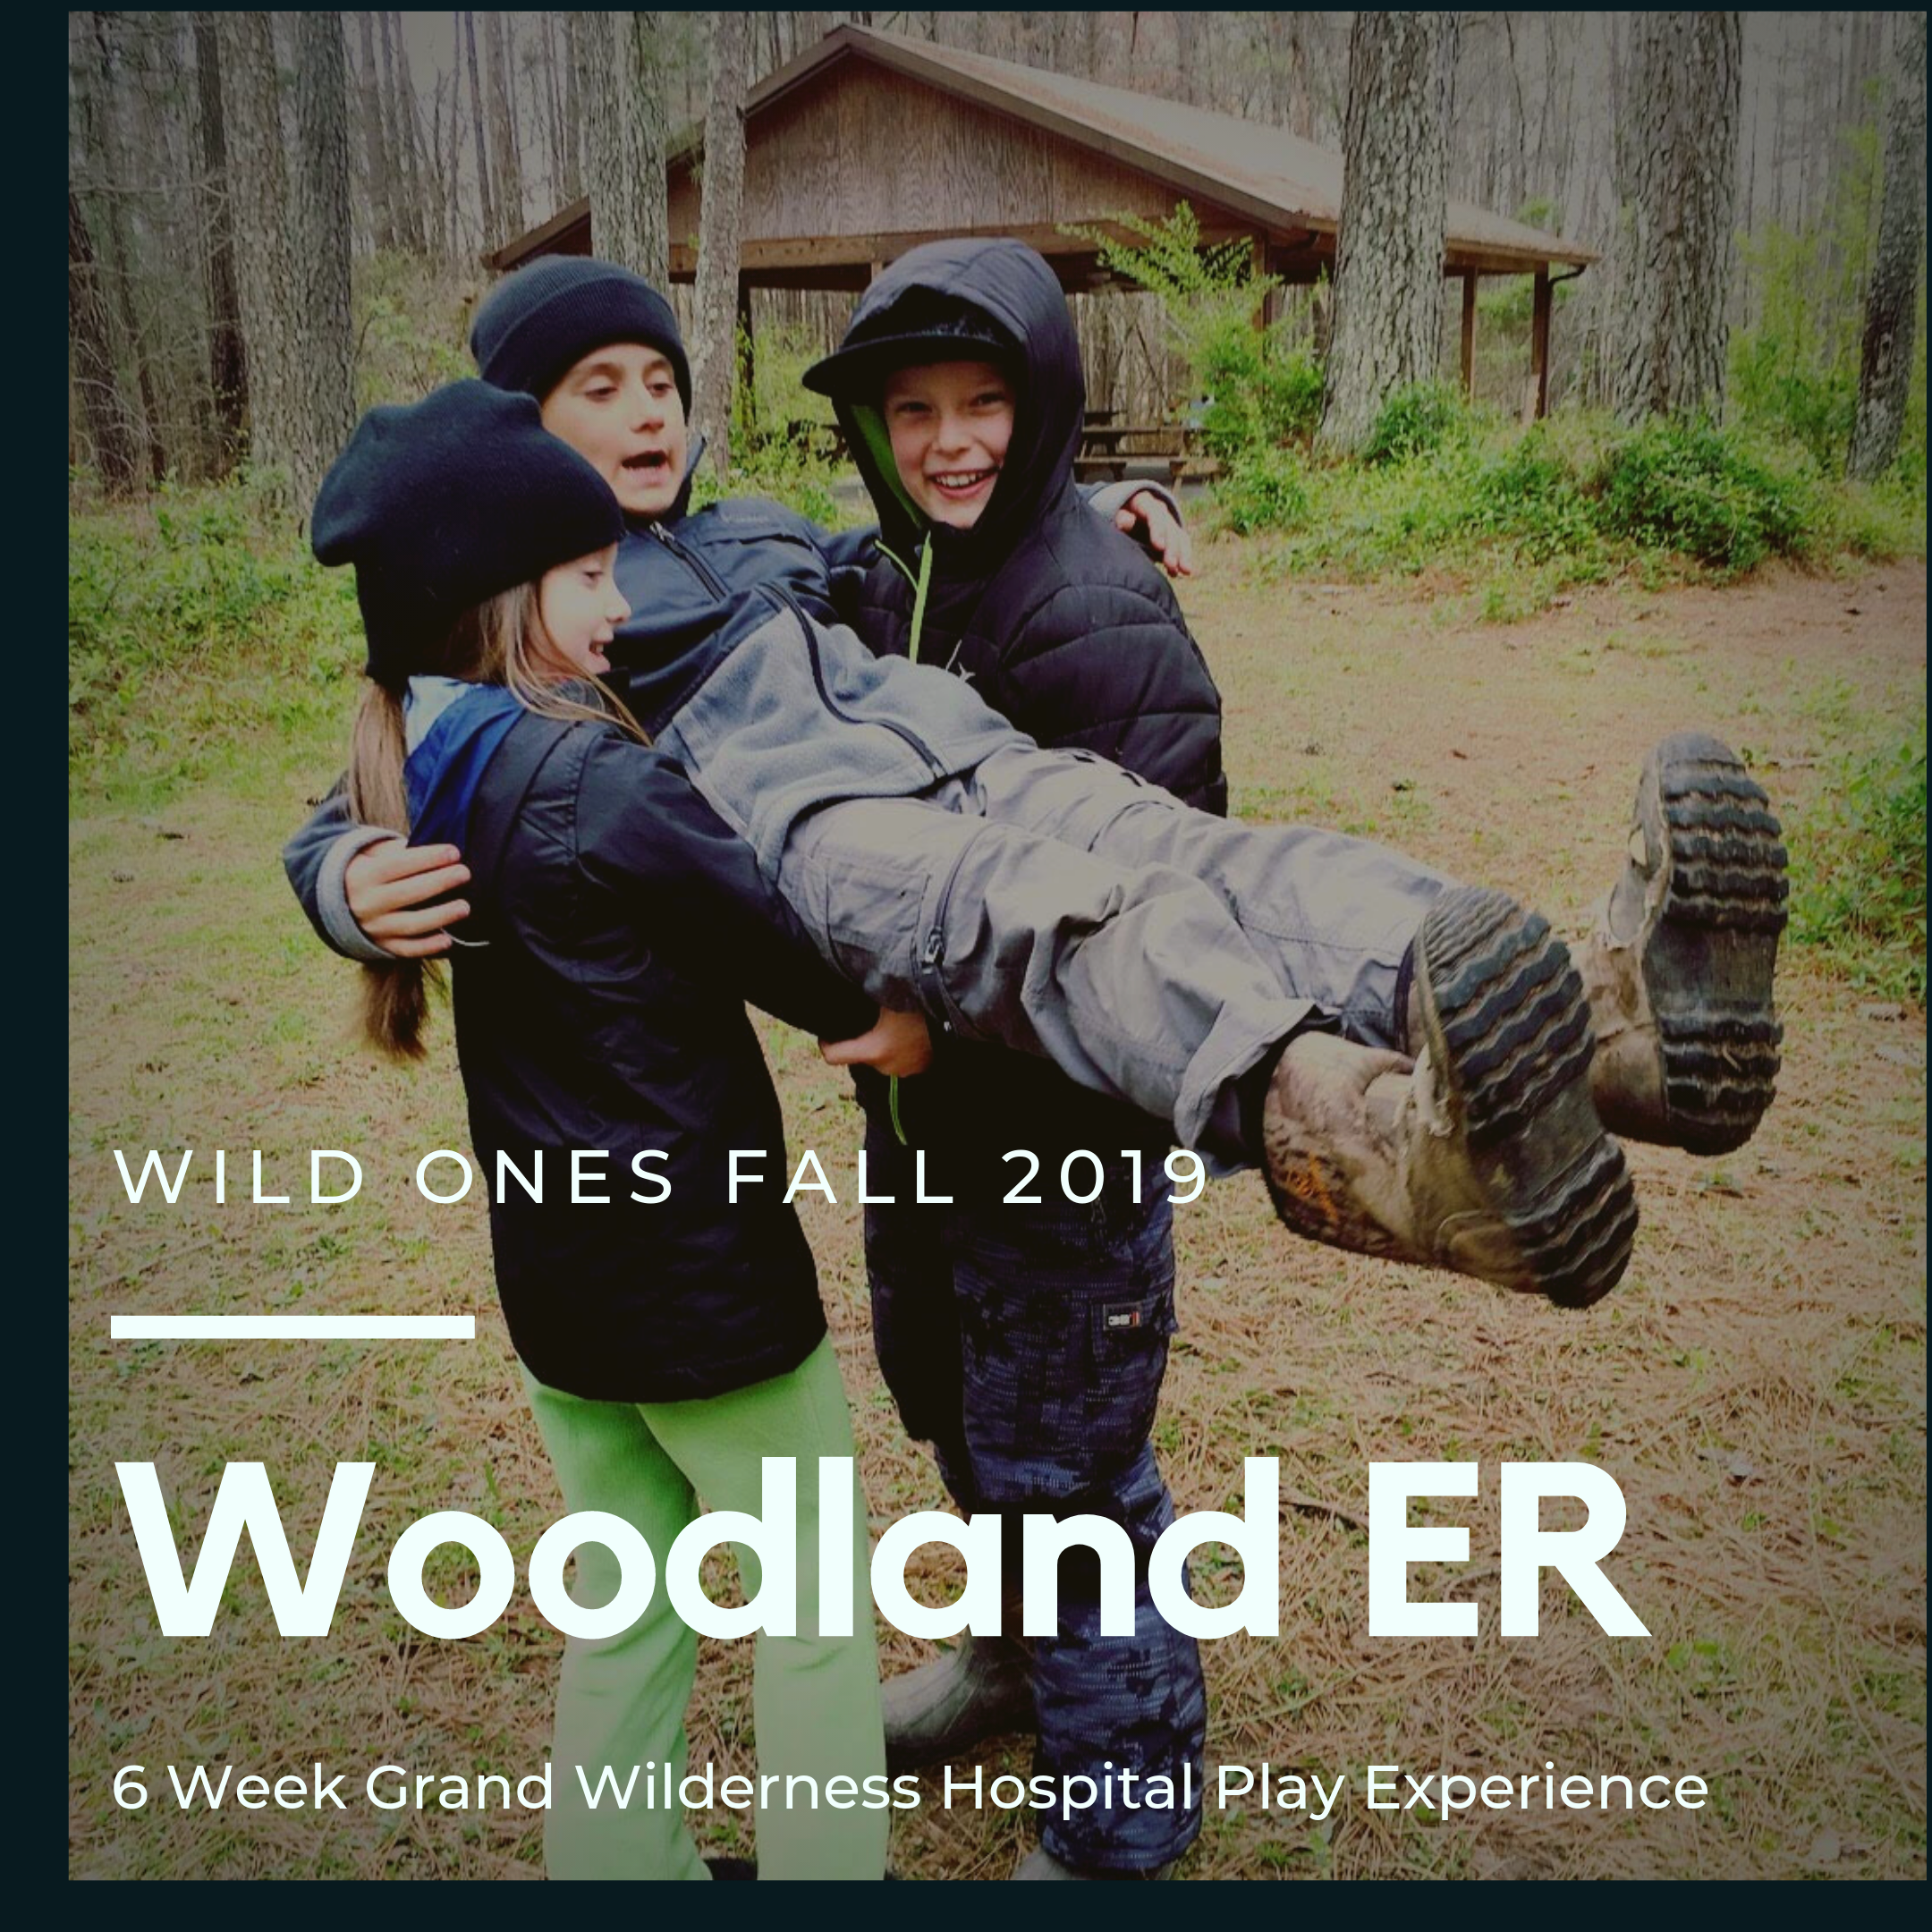 Fall 2019 Wild Ones - Woodland ER - TimberNook West Central Florida